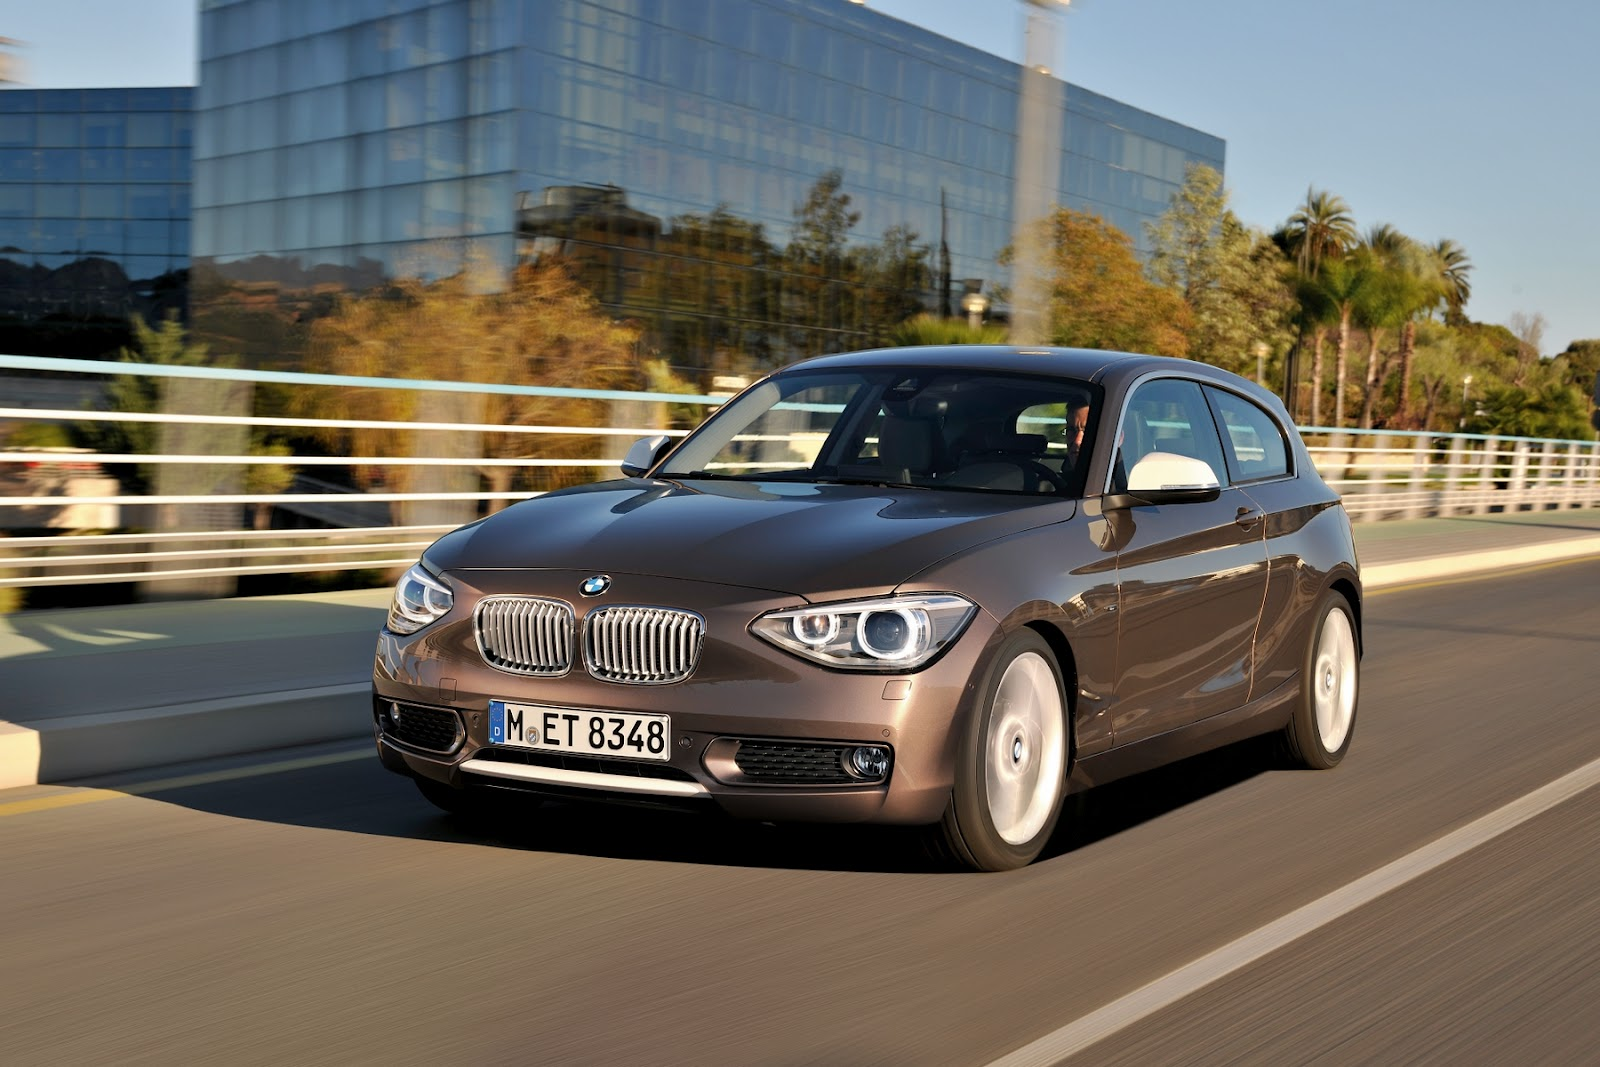 bmw 1 series 3 door 2013 car barn sport. Black Bedroom Furniture Sets. Home Design Ideas